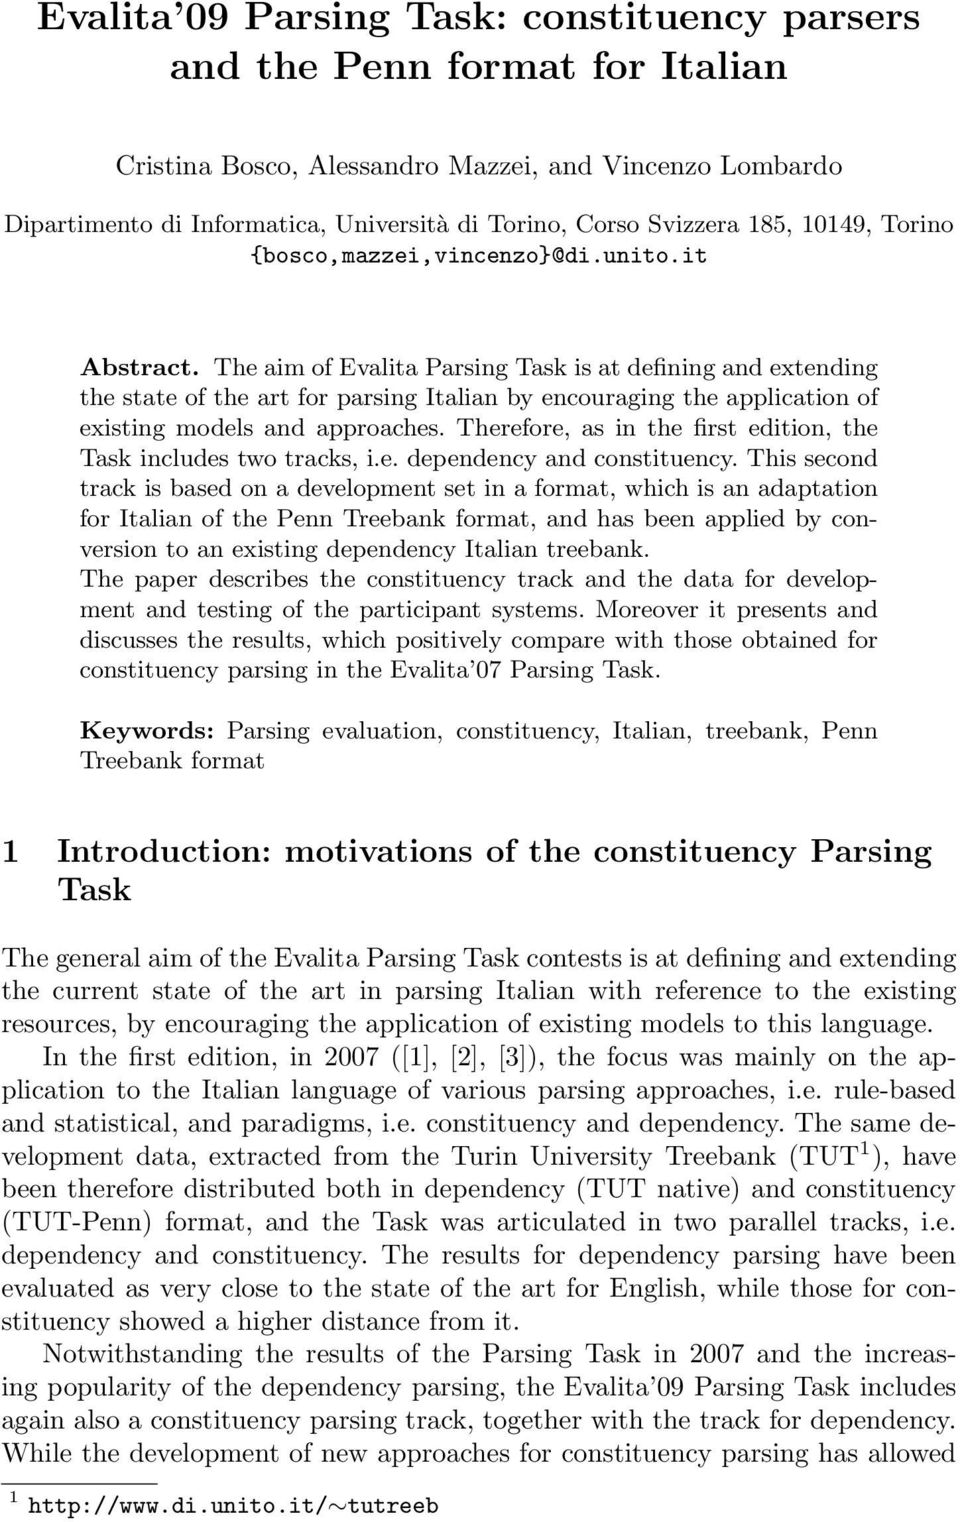 The aim of Evalita Parsing Task is at defining and extending the state of the art for parsing Italian by encouraging the application of existing models and approaches.